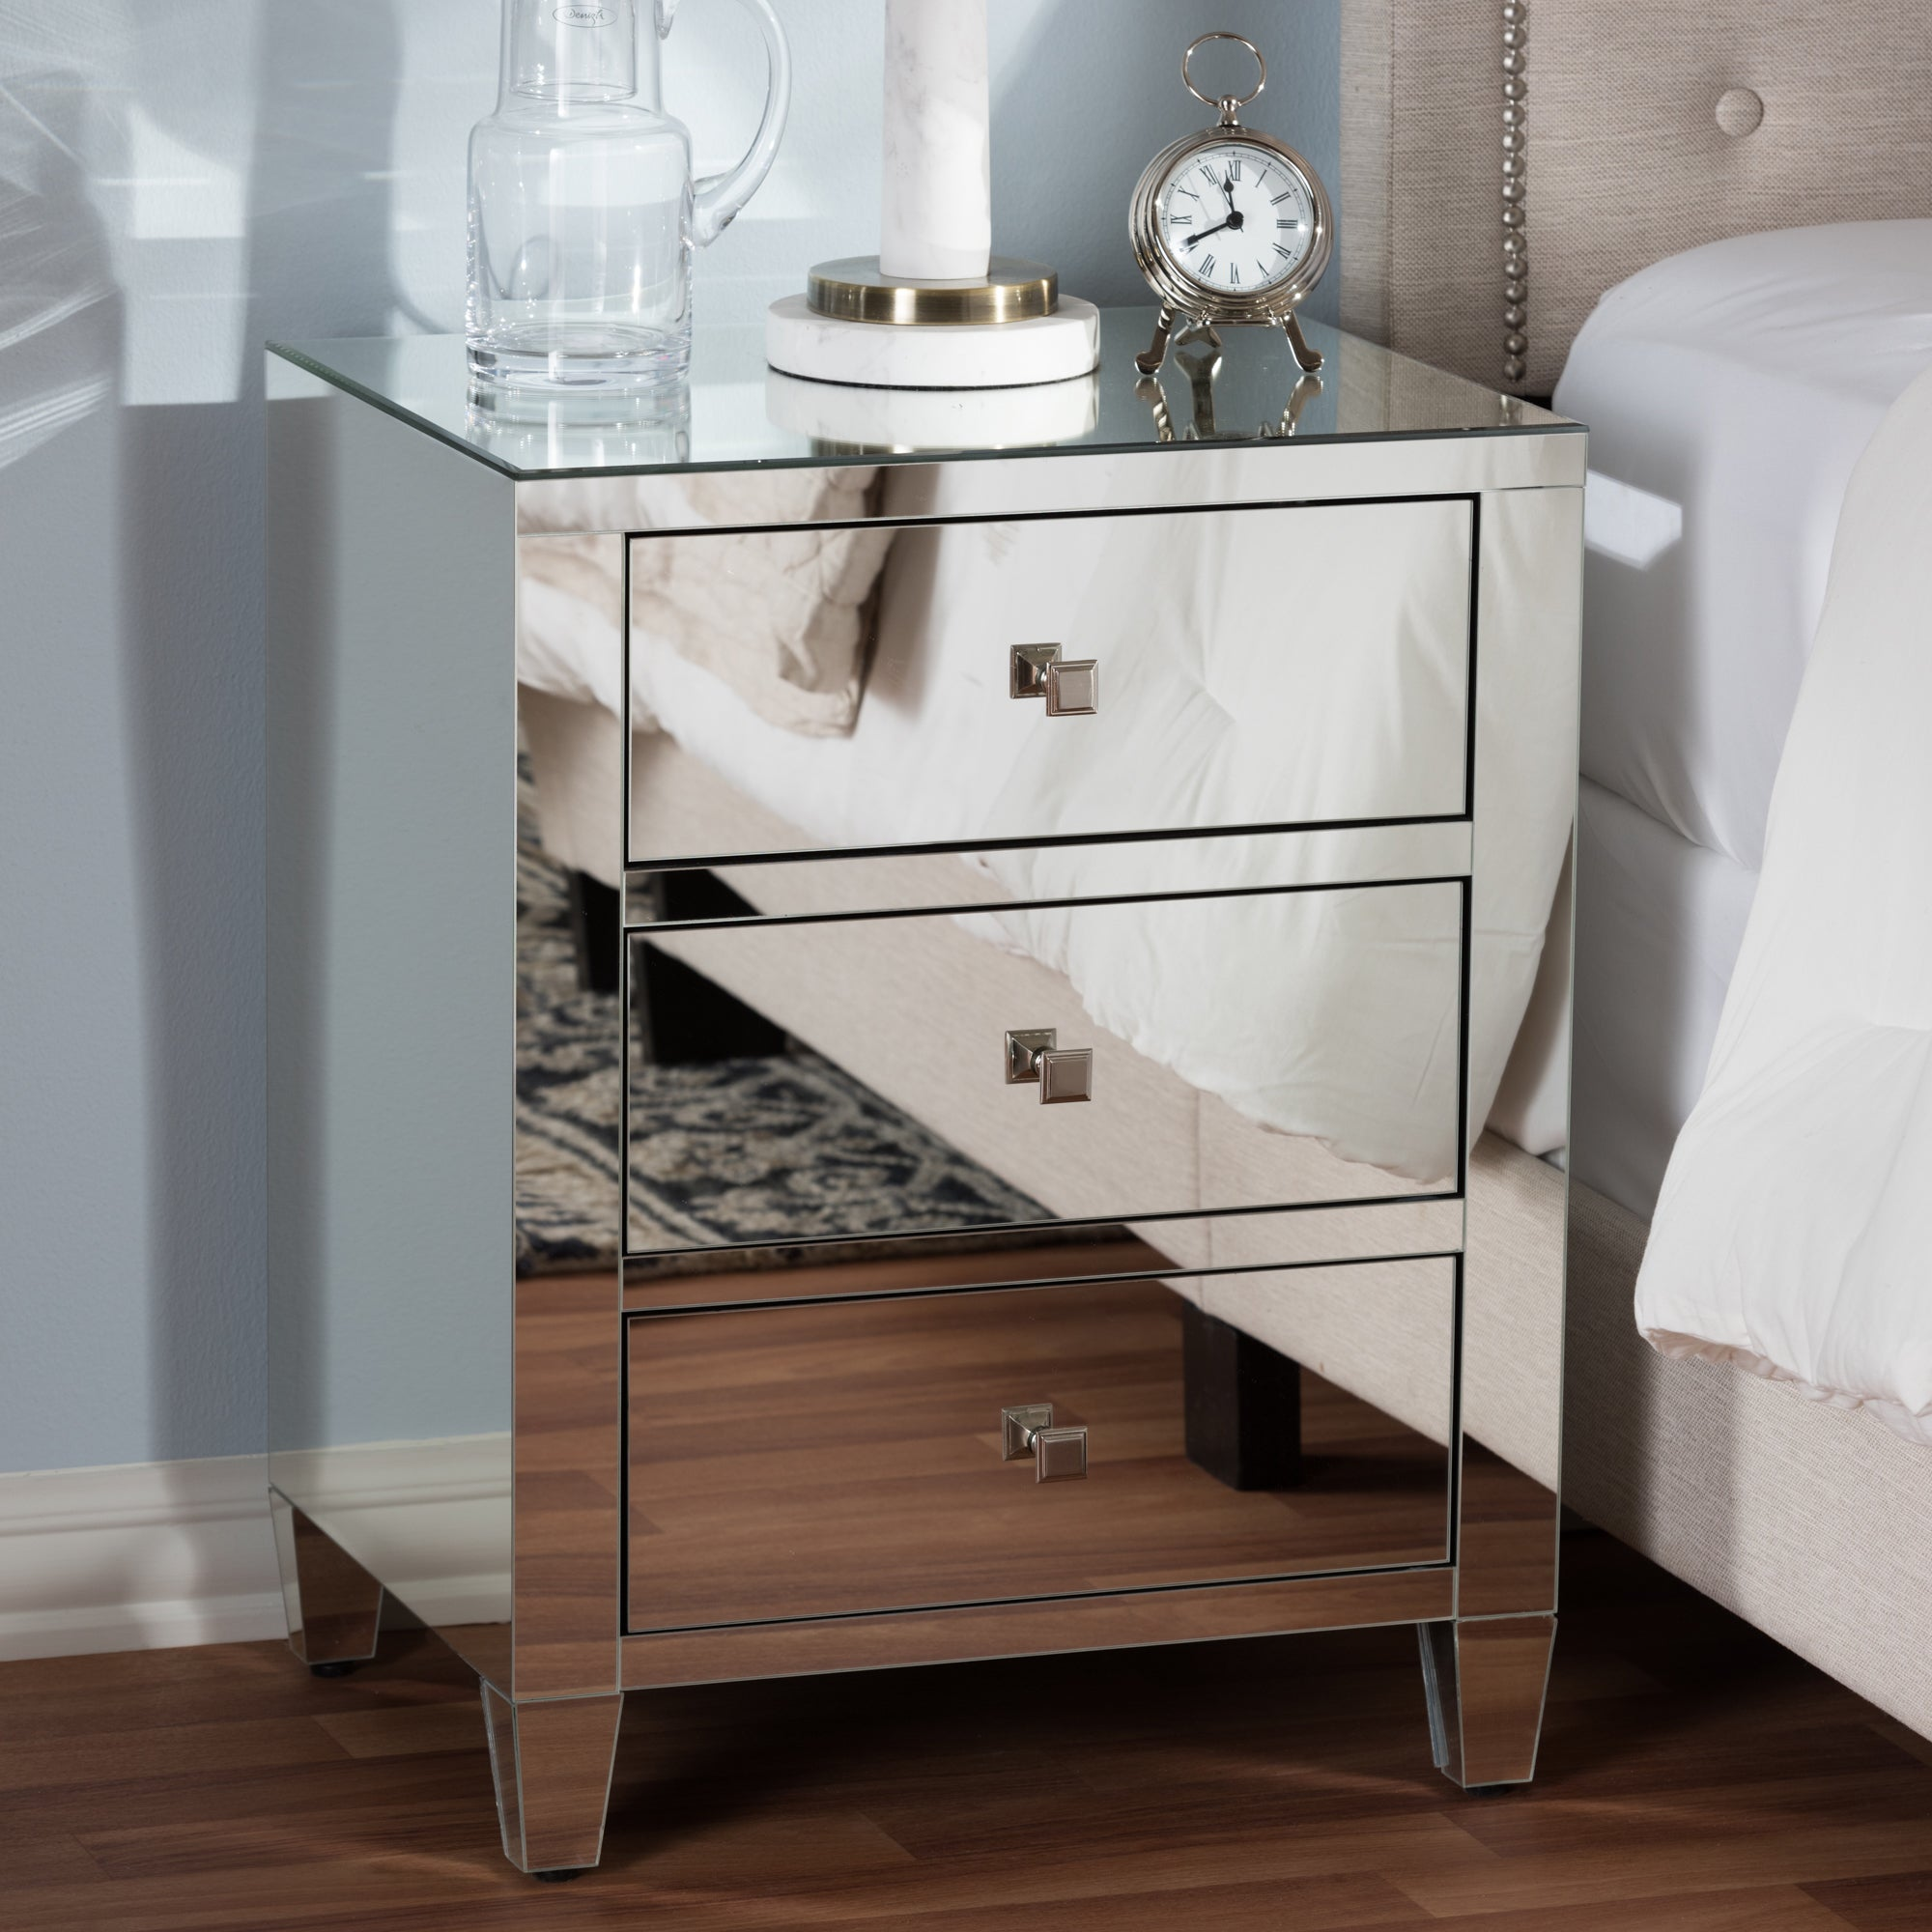 Shop glam silver mirrored nightstand 2 piece set by baxton studio free shipping today overstock com 14587132